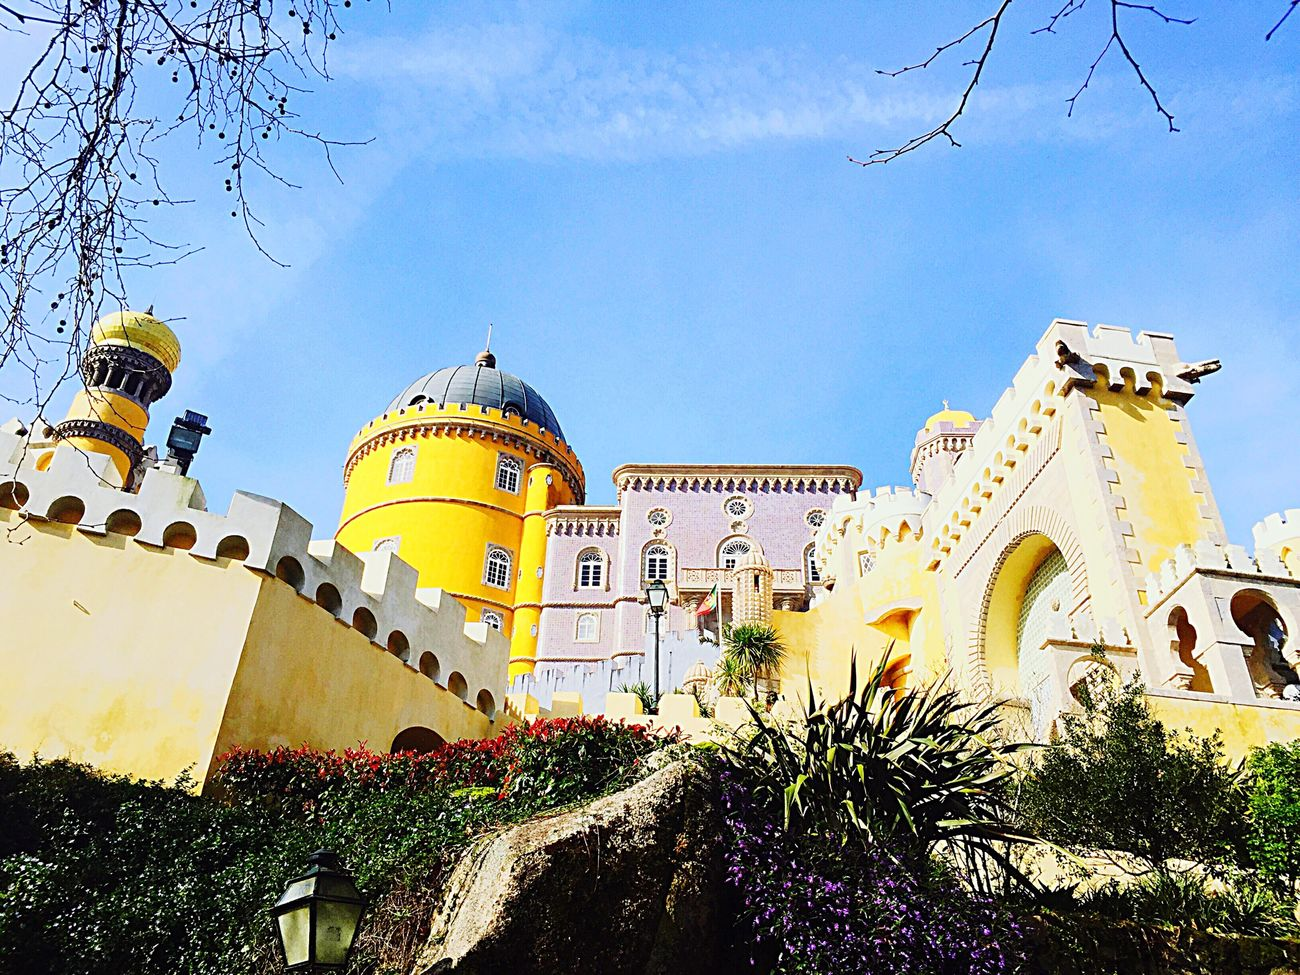 Sintra Hello World Palacios De Pena Holidays ☀ Lisboa Lisbonlovers Lisbon - Portugal Sintra (Portugal) Sintrasecrets Sintra Palace Park Fairytales & Dreams Fairytale Castle Fairytale Garden Fairyland Mustsee Beautiful Places Beautiful Places Around The World Beauty Redefined